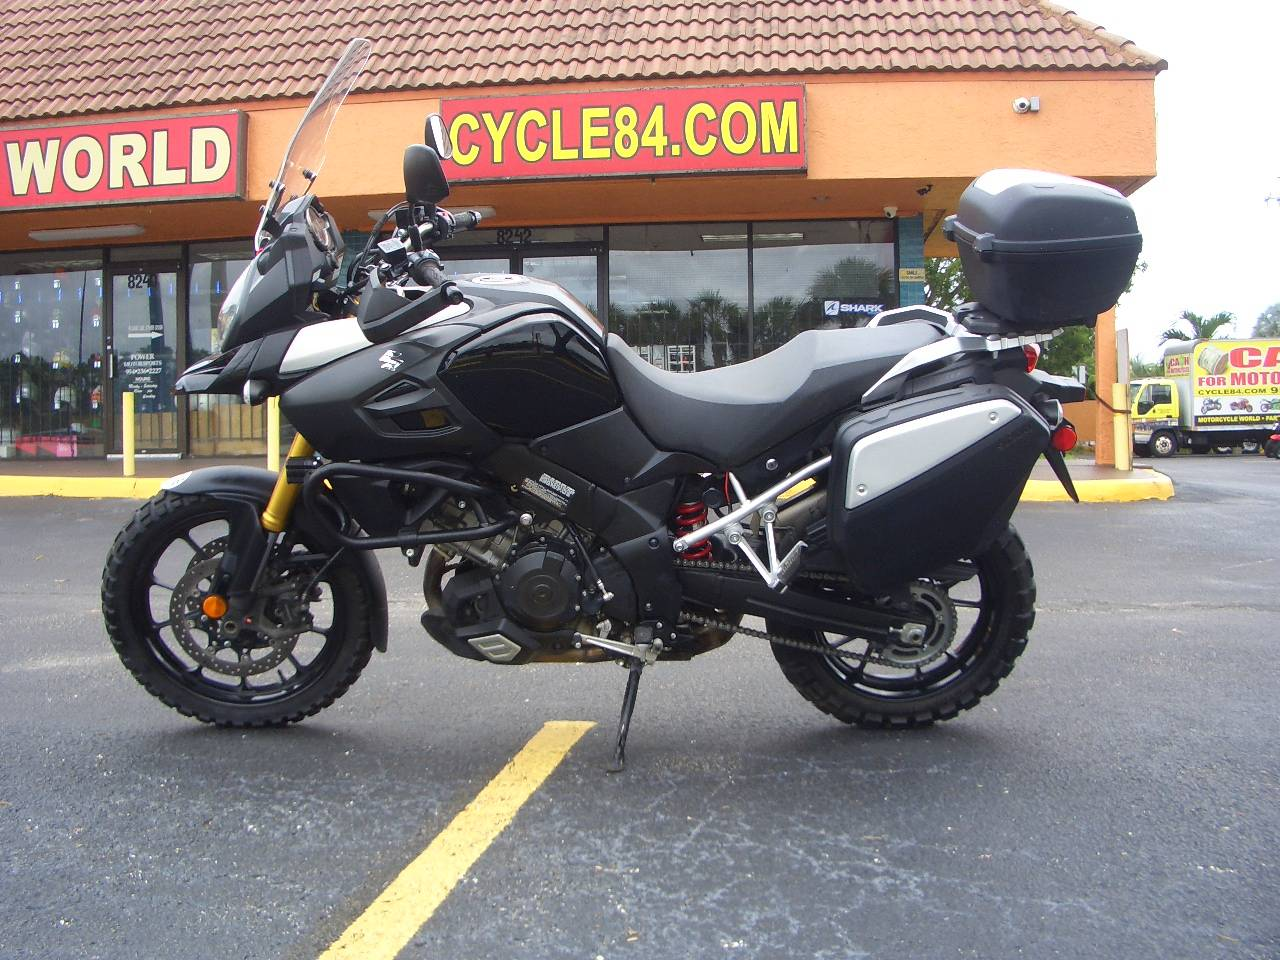 2014 Suzuki V-Strom 1000 ABS Adventure in Fort Lauderdale, Florida